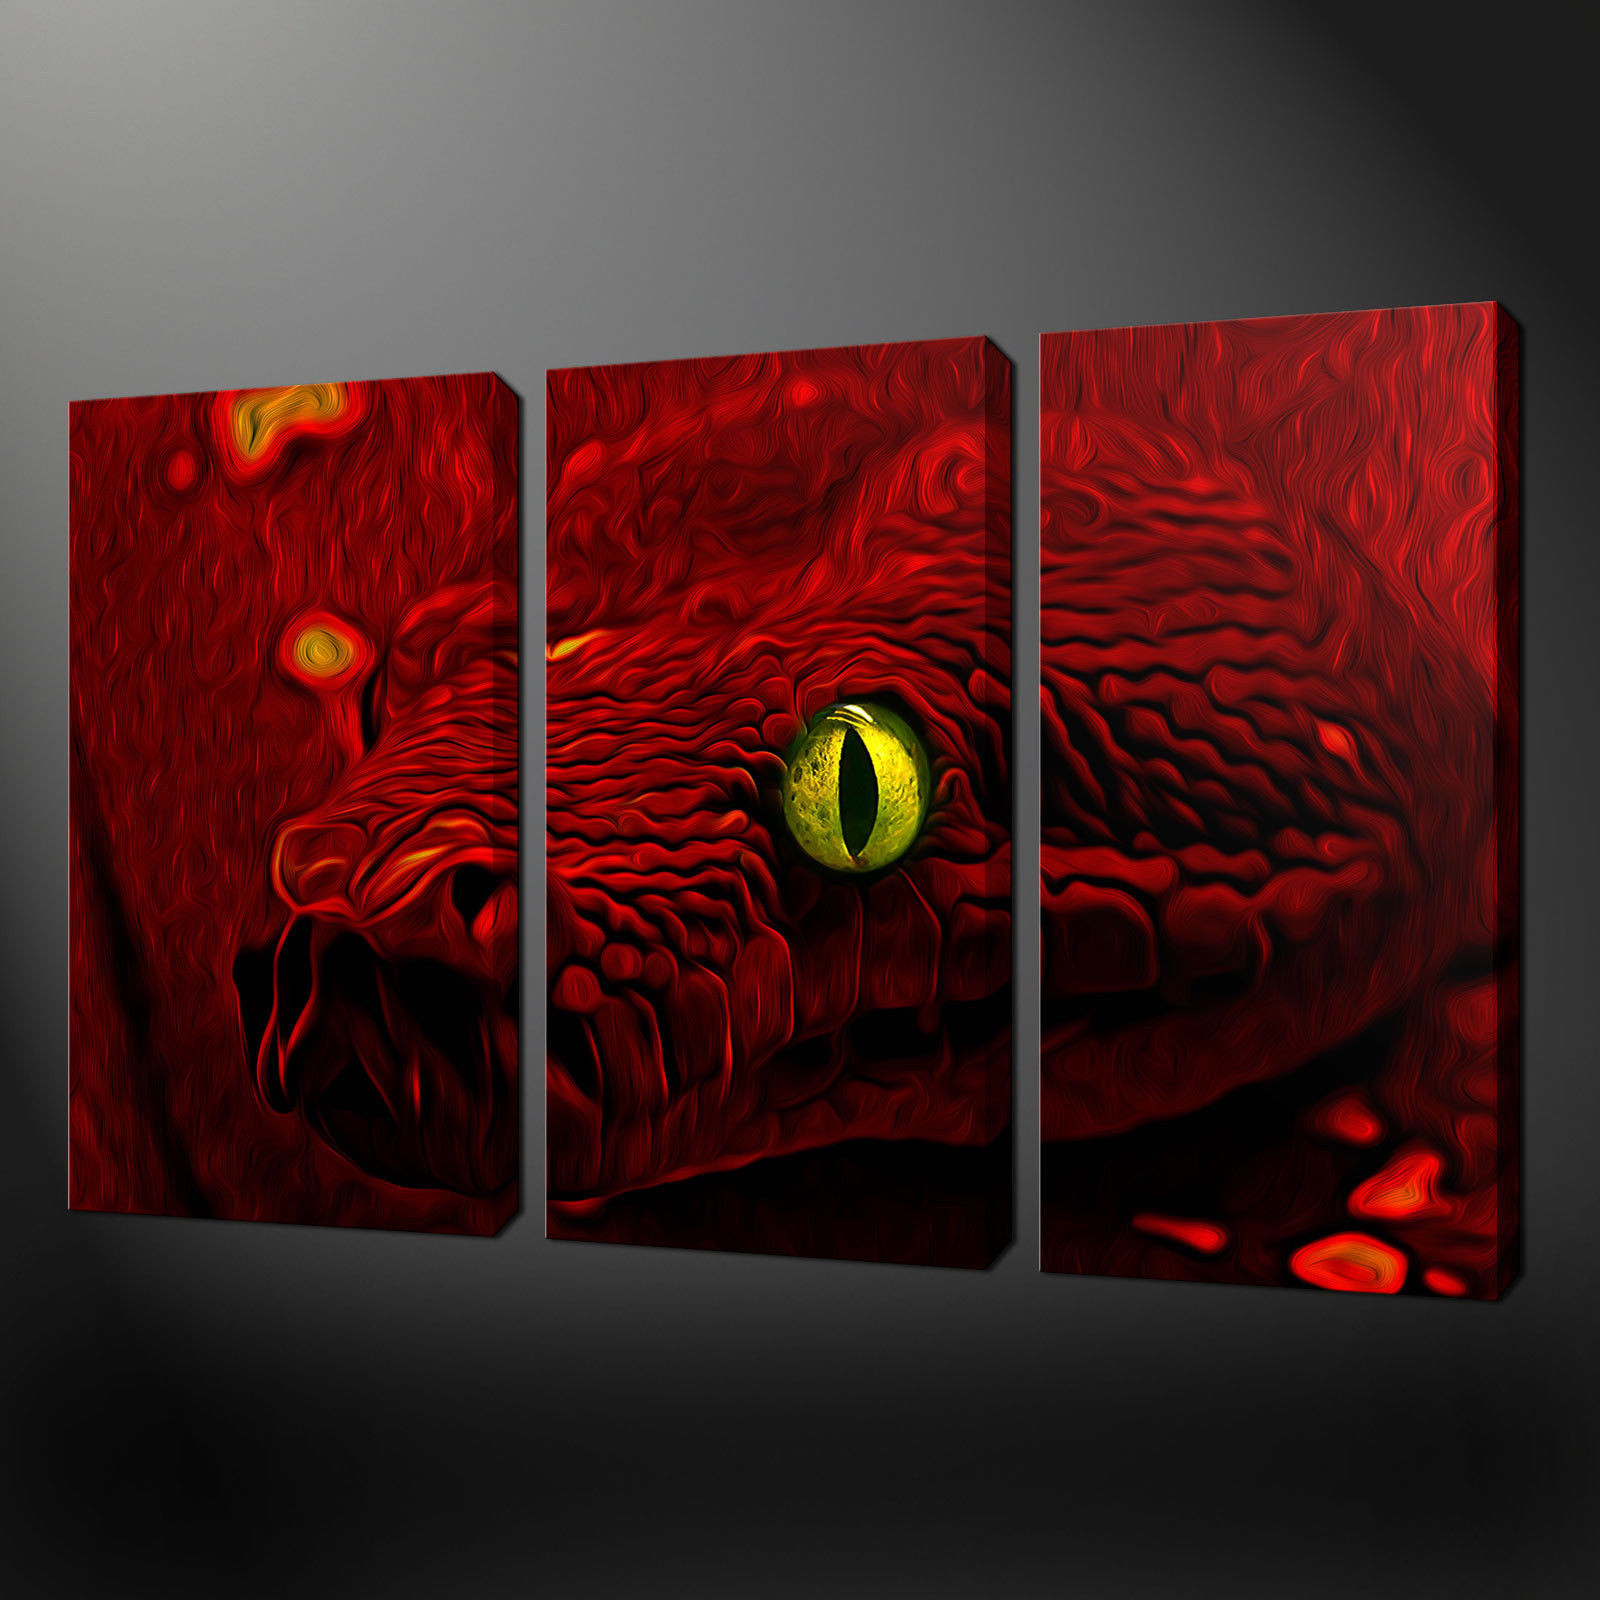 Best ideas about Red Wall Art . Save or Pin Canvas print pictures High quality Handmade Free next Now.